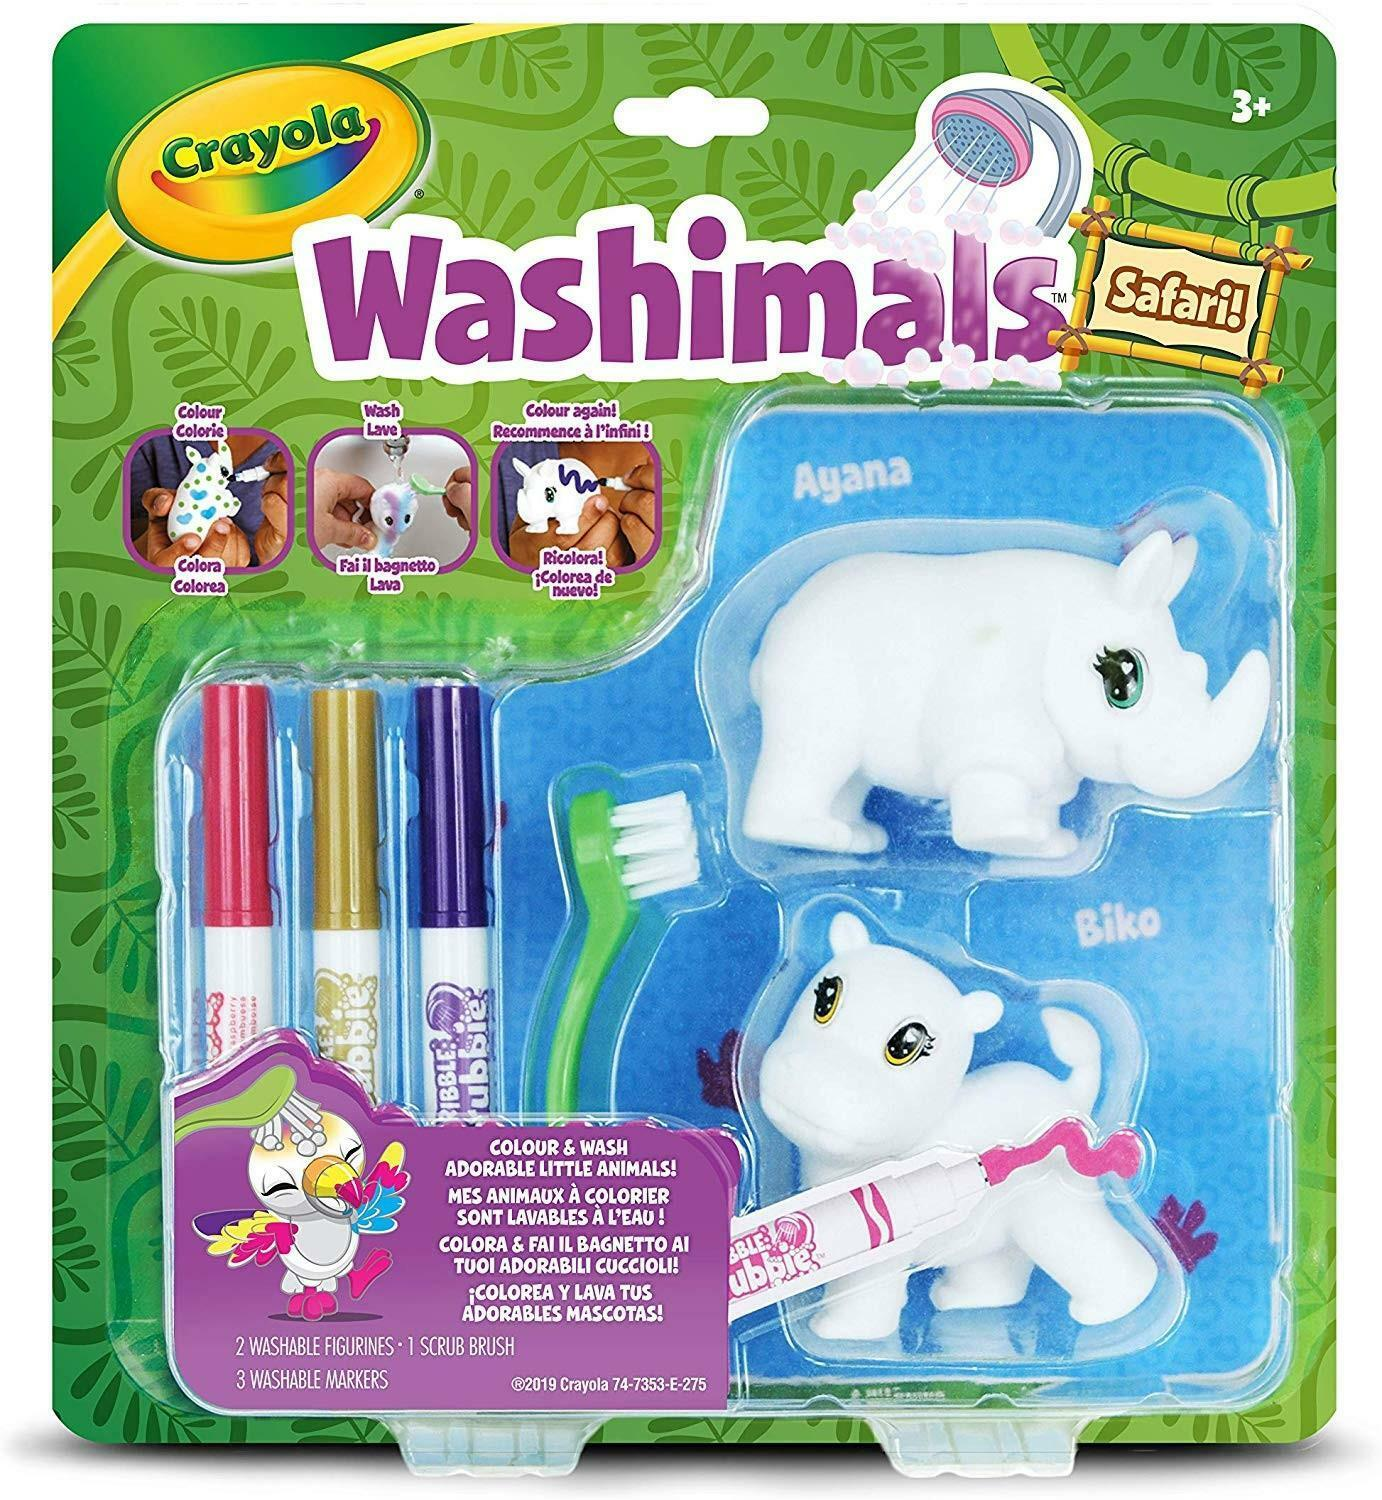 crayola washimals safari - ayana/biko